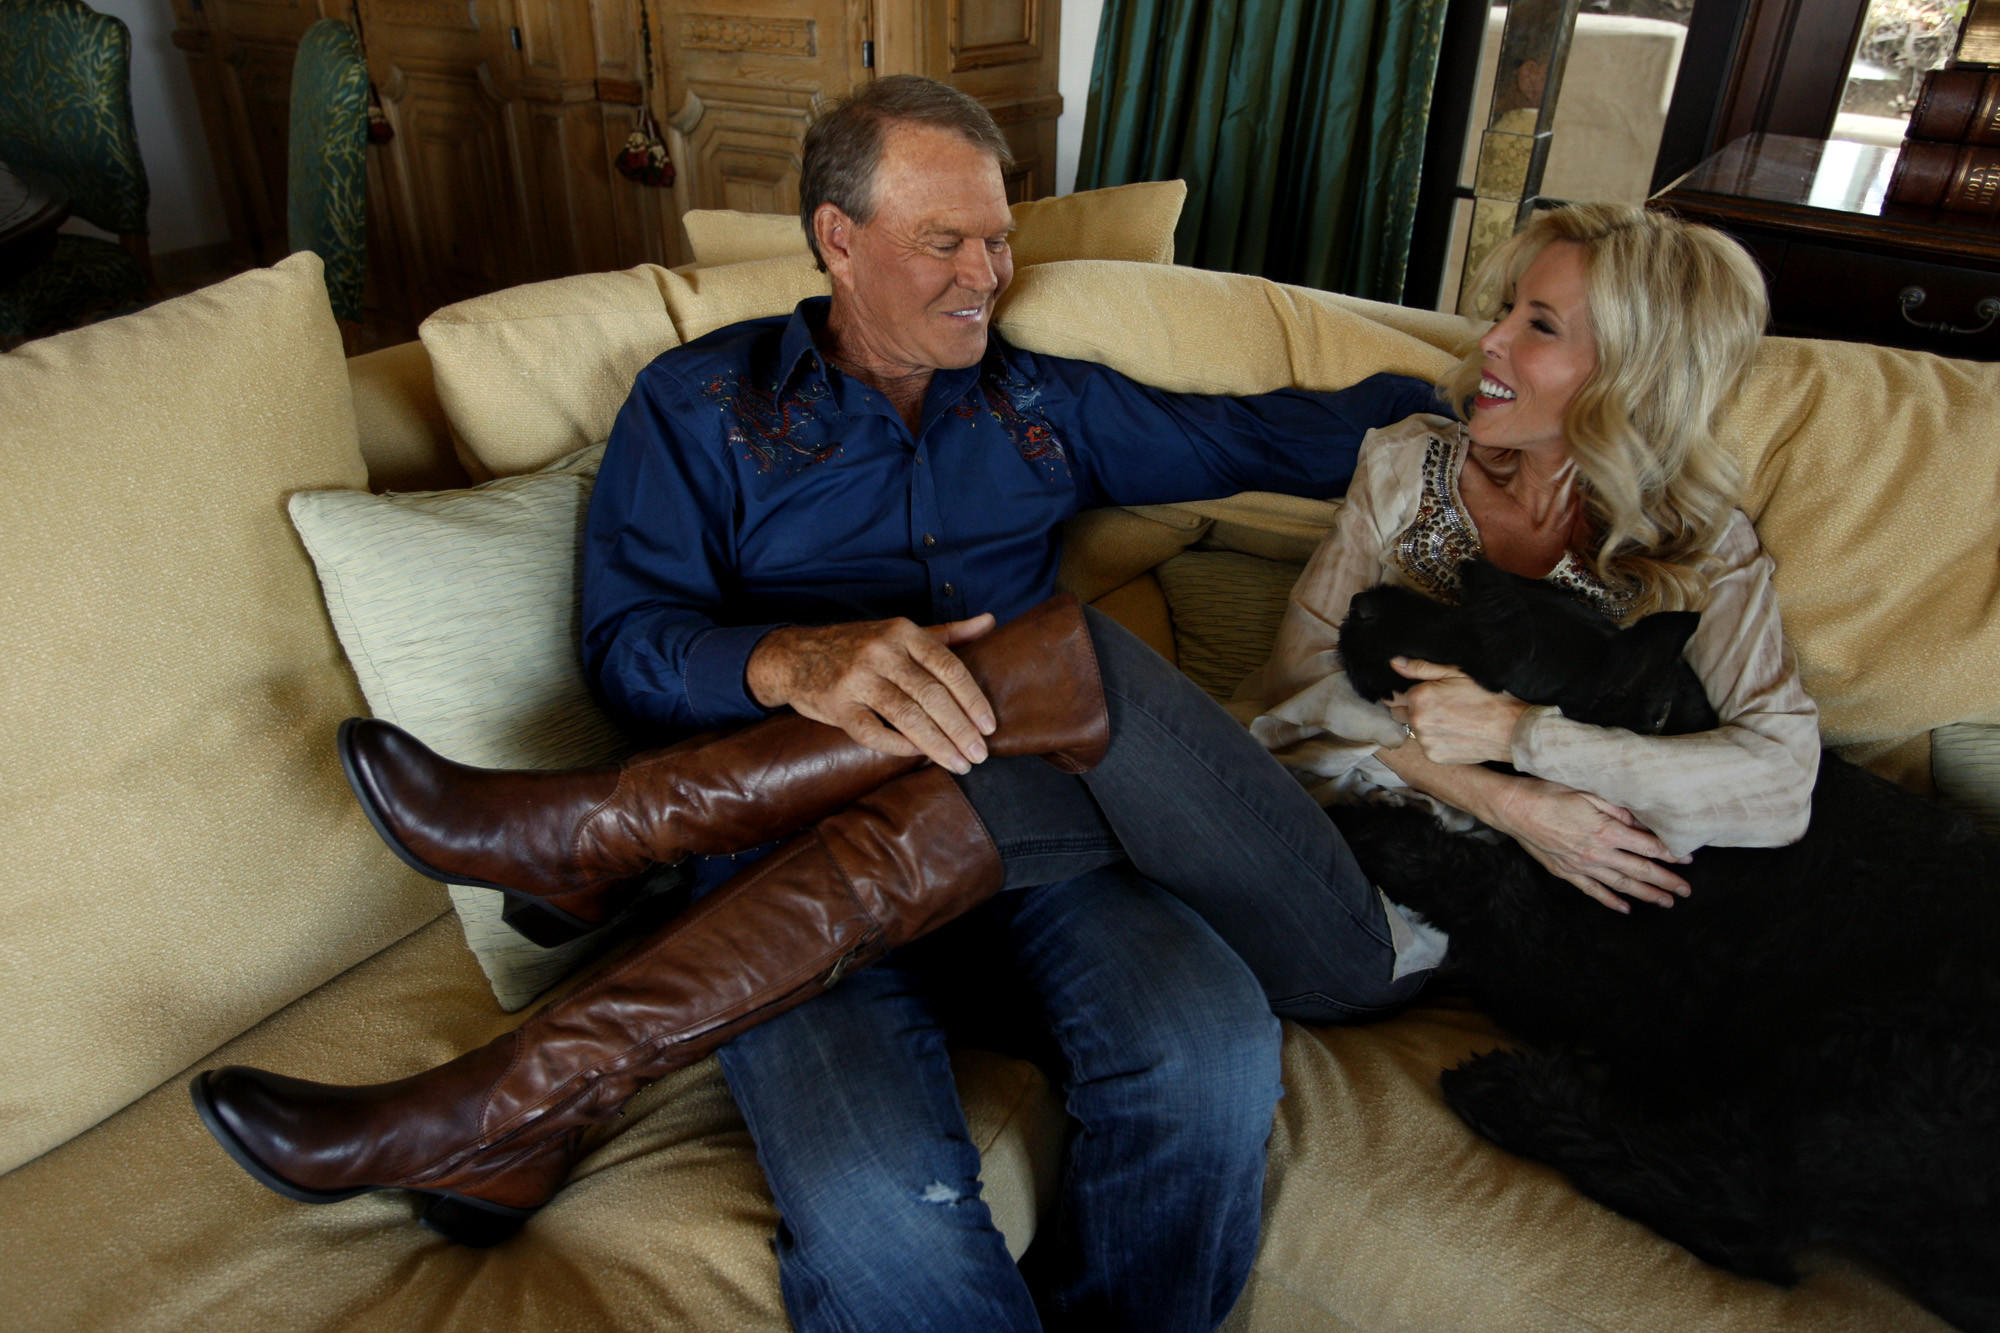 Glen and Kim Campbell photographed during an interview with The Times at their Malibu home on July 27, 2011. (Genaro Molina / Los Angeles Times)